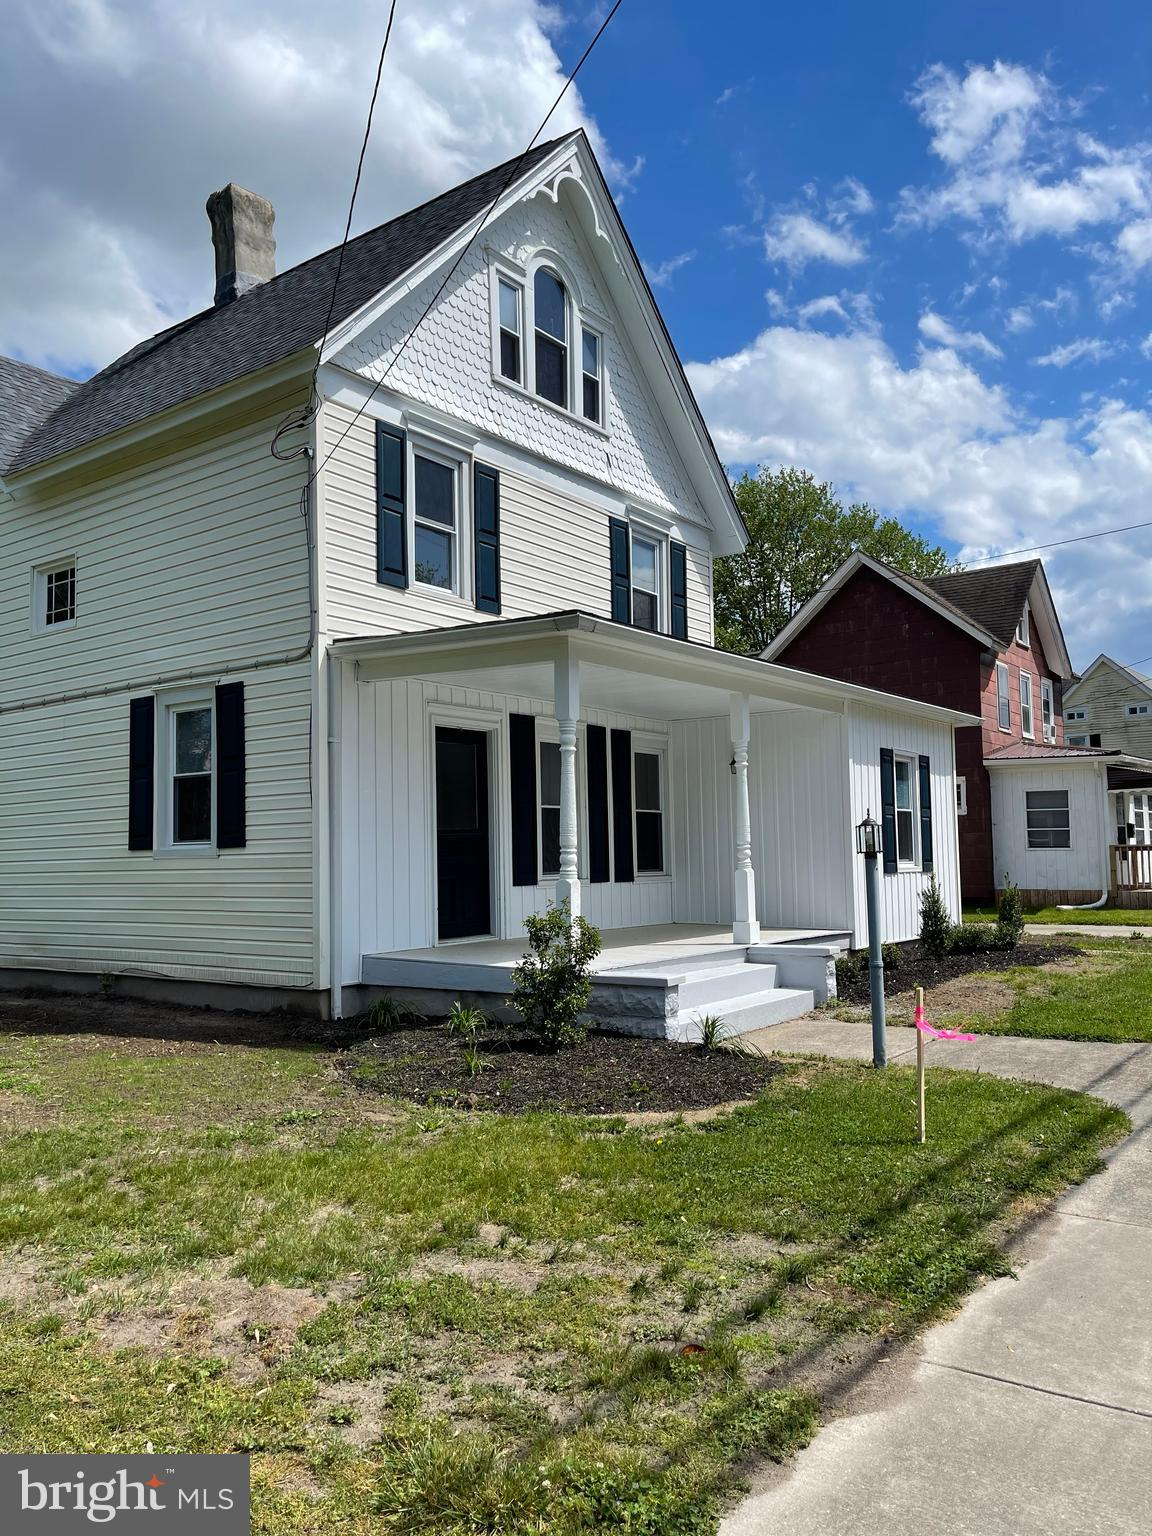 BEAUTIFULLY RENOVATED! This home is the definition of historic charm but with all of your modern bells and whistles. Fresh paint throughout, beautifully updated kitchen with skylight, granite countertops, and stainless steel appliances. Did we mention the first floor master suite? Boasting abundant natural light, this huge master bedroom also offers an en-suite bath with tile shower & dual sinks, and finally opening to your large walk-in closet; one of multiple featured throughout the home's other three bedrooms. We could go on and on, but this home is honestly a must-see, so schedule your showing today!!